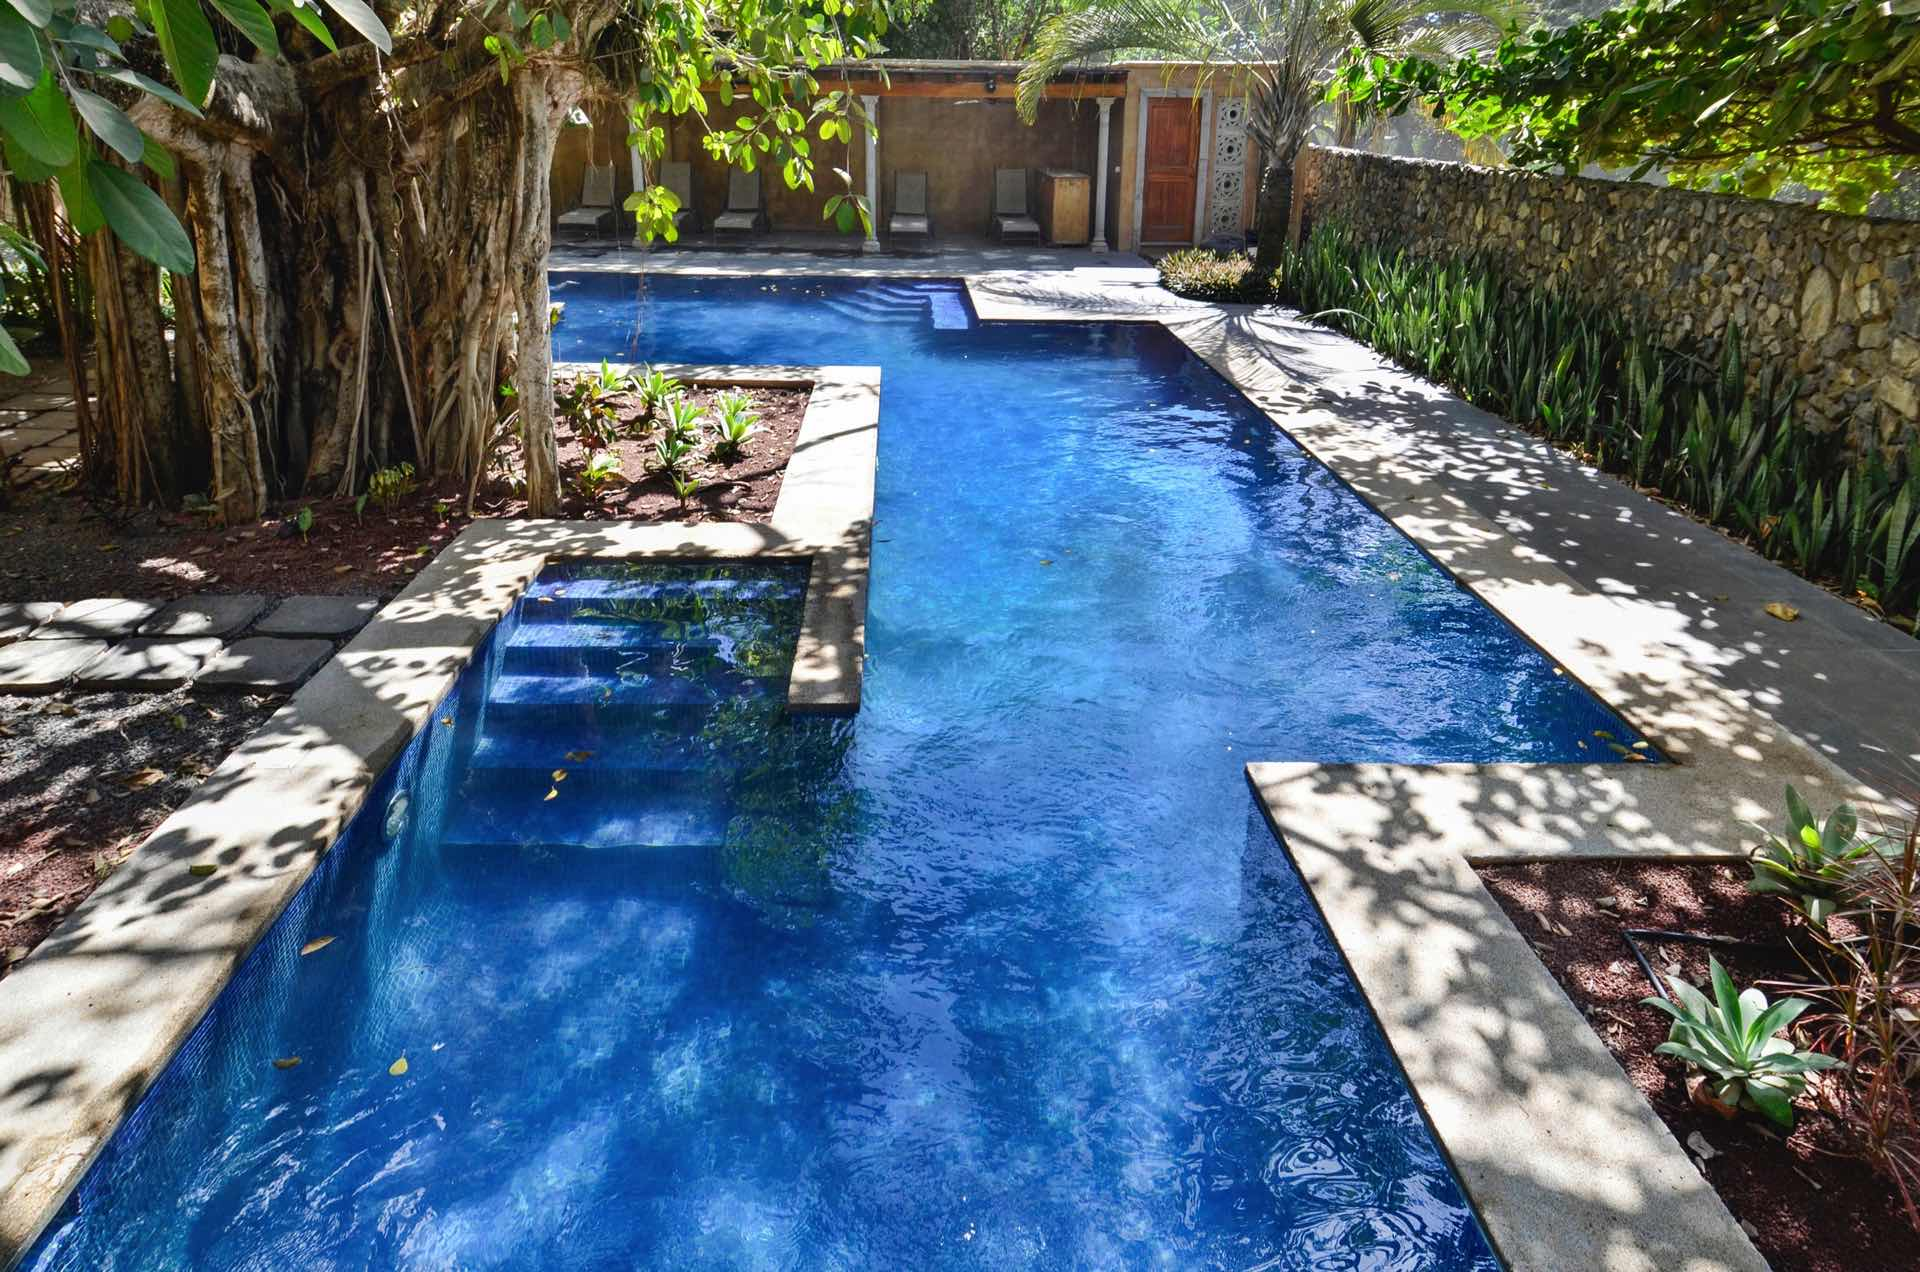 Pool constructed to save a native Banyan tree